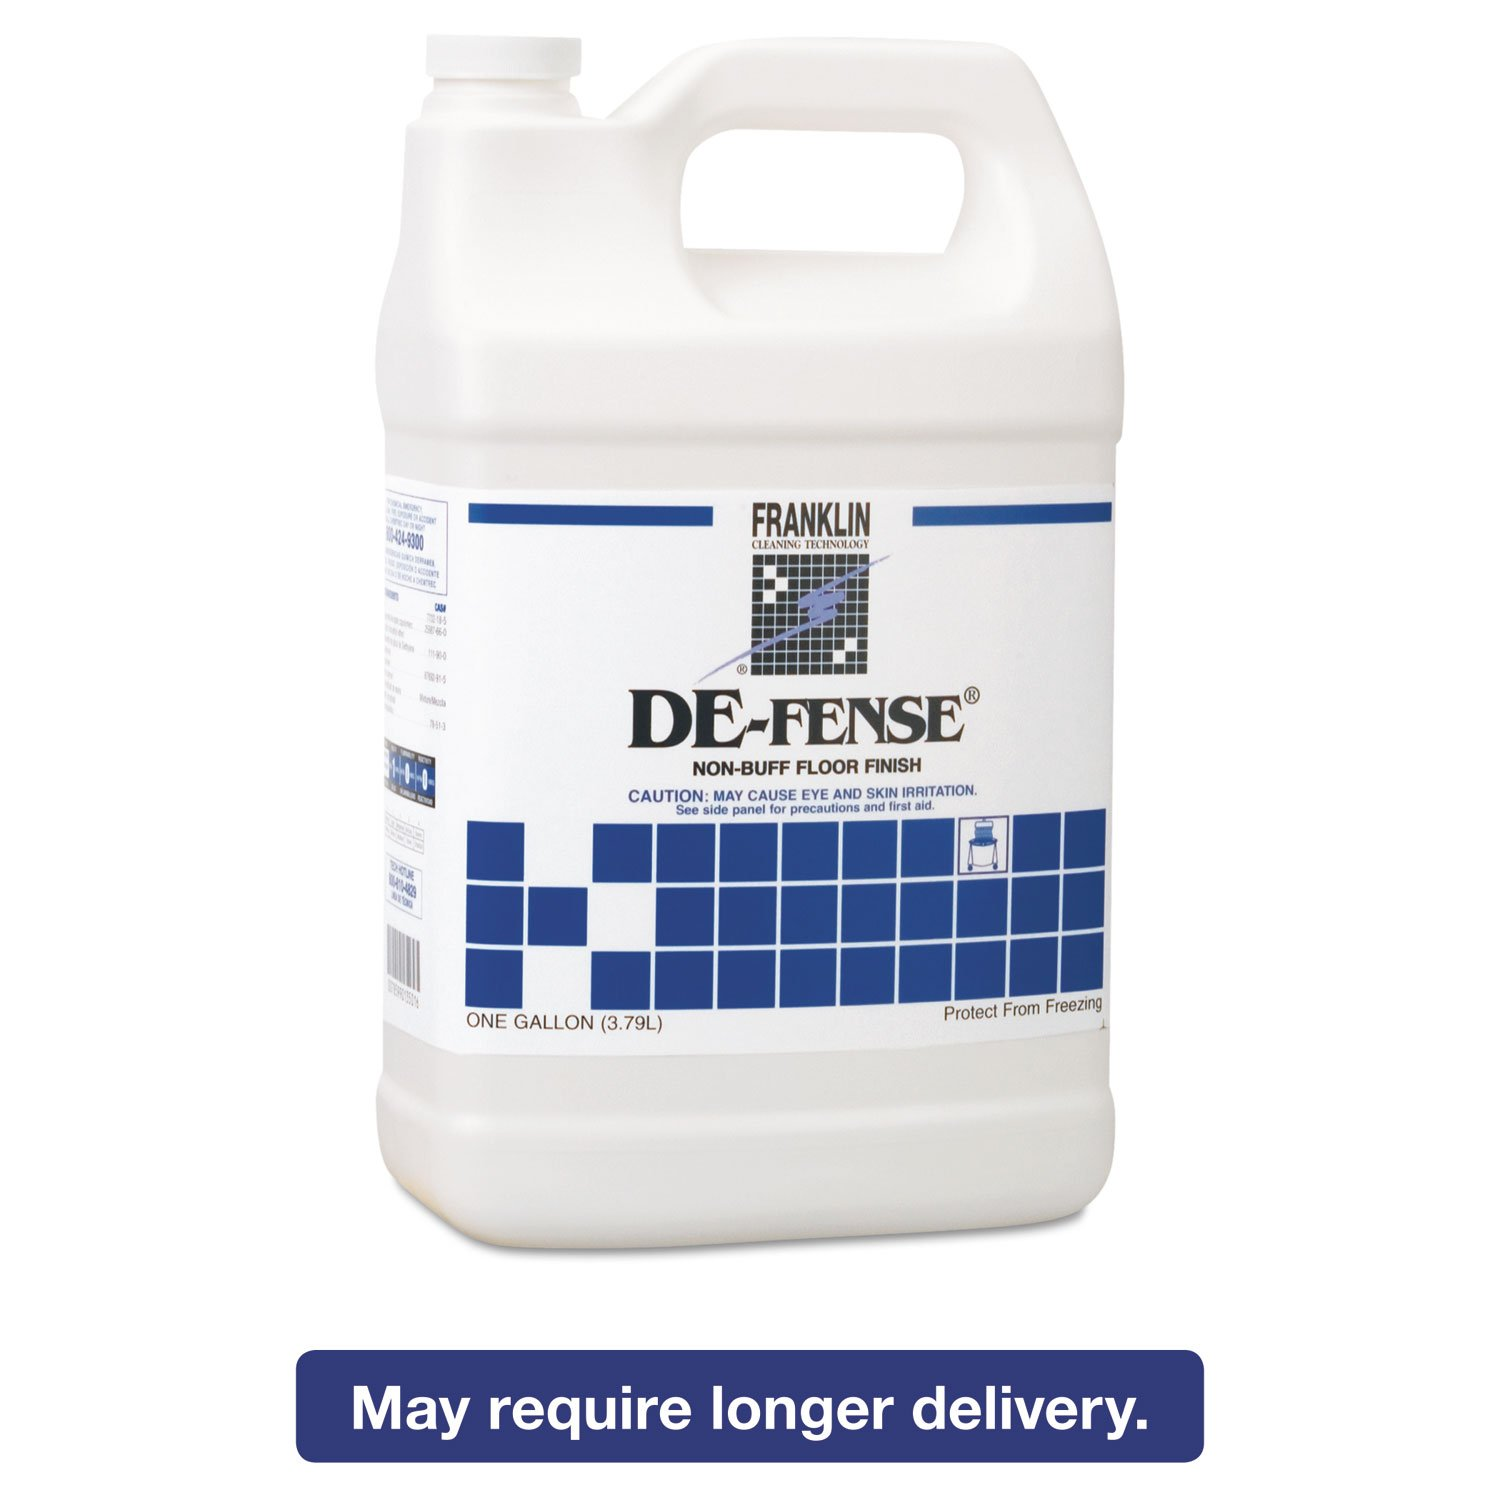 Franklin Cleaning Technology F135022 DE-FENSE Non-Buff Floor Finish, 1 Gallon (Pack of 4)